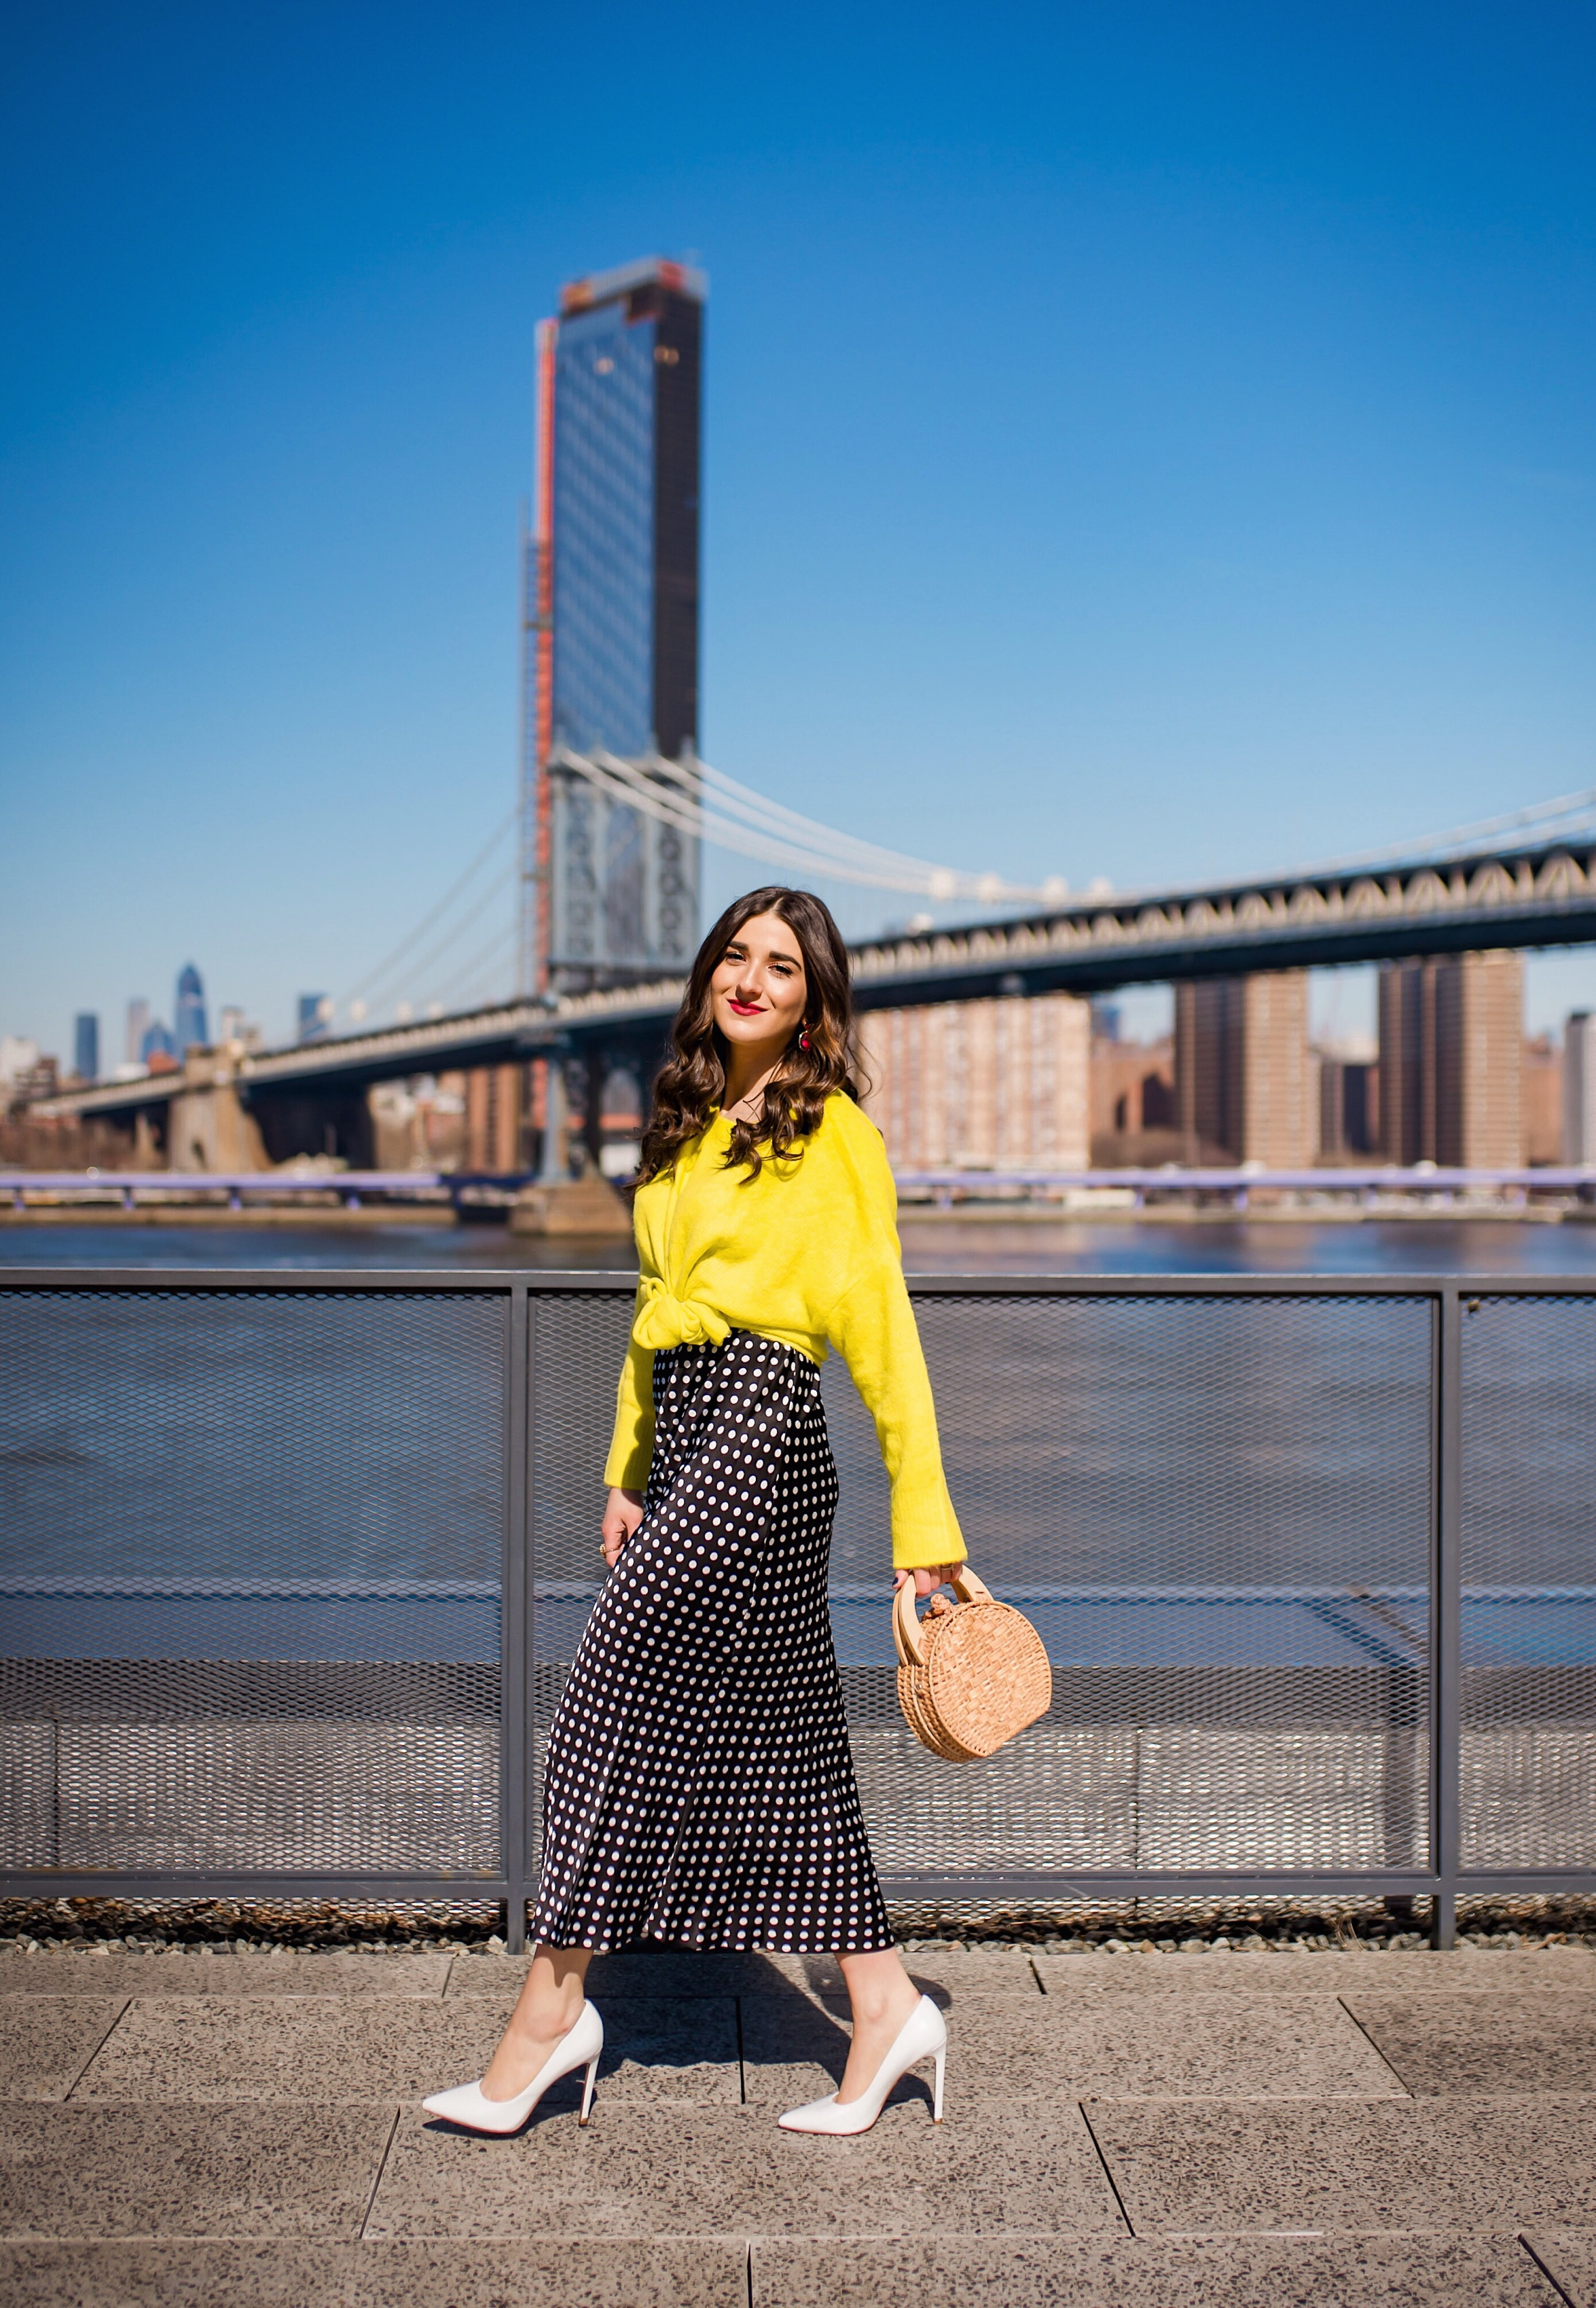 How I Wound Up With Boring White Dishes Navy Polka Dot Dress Neon Yellow Knotted Sweater Esther Santer Fashion Blog NYC Street Style Blogger Outfit OOTD Trendy Shopping Girl White Heels What How To Wear Photoshoot Dumbo Brooklyn Bridge Laurel Creative.JPG